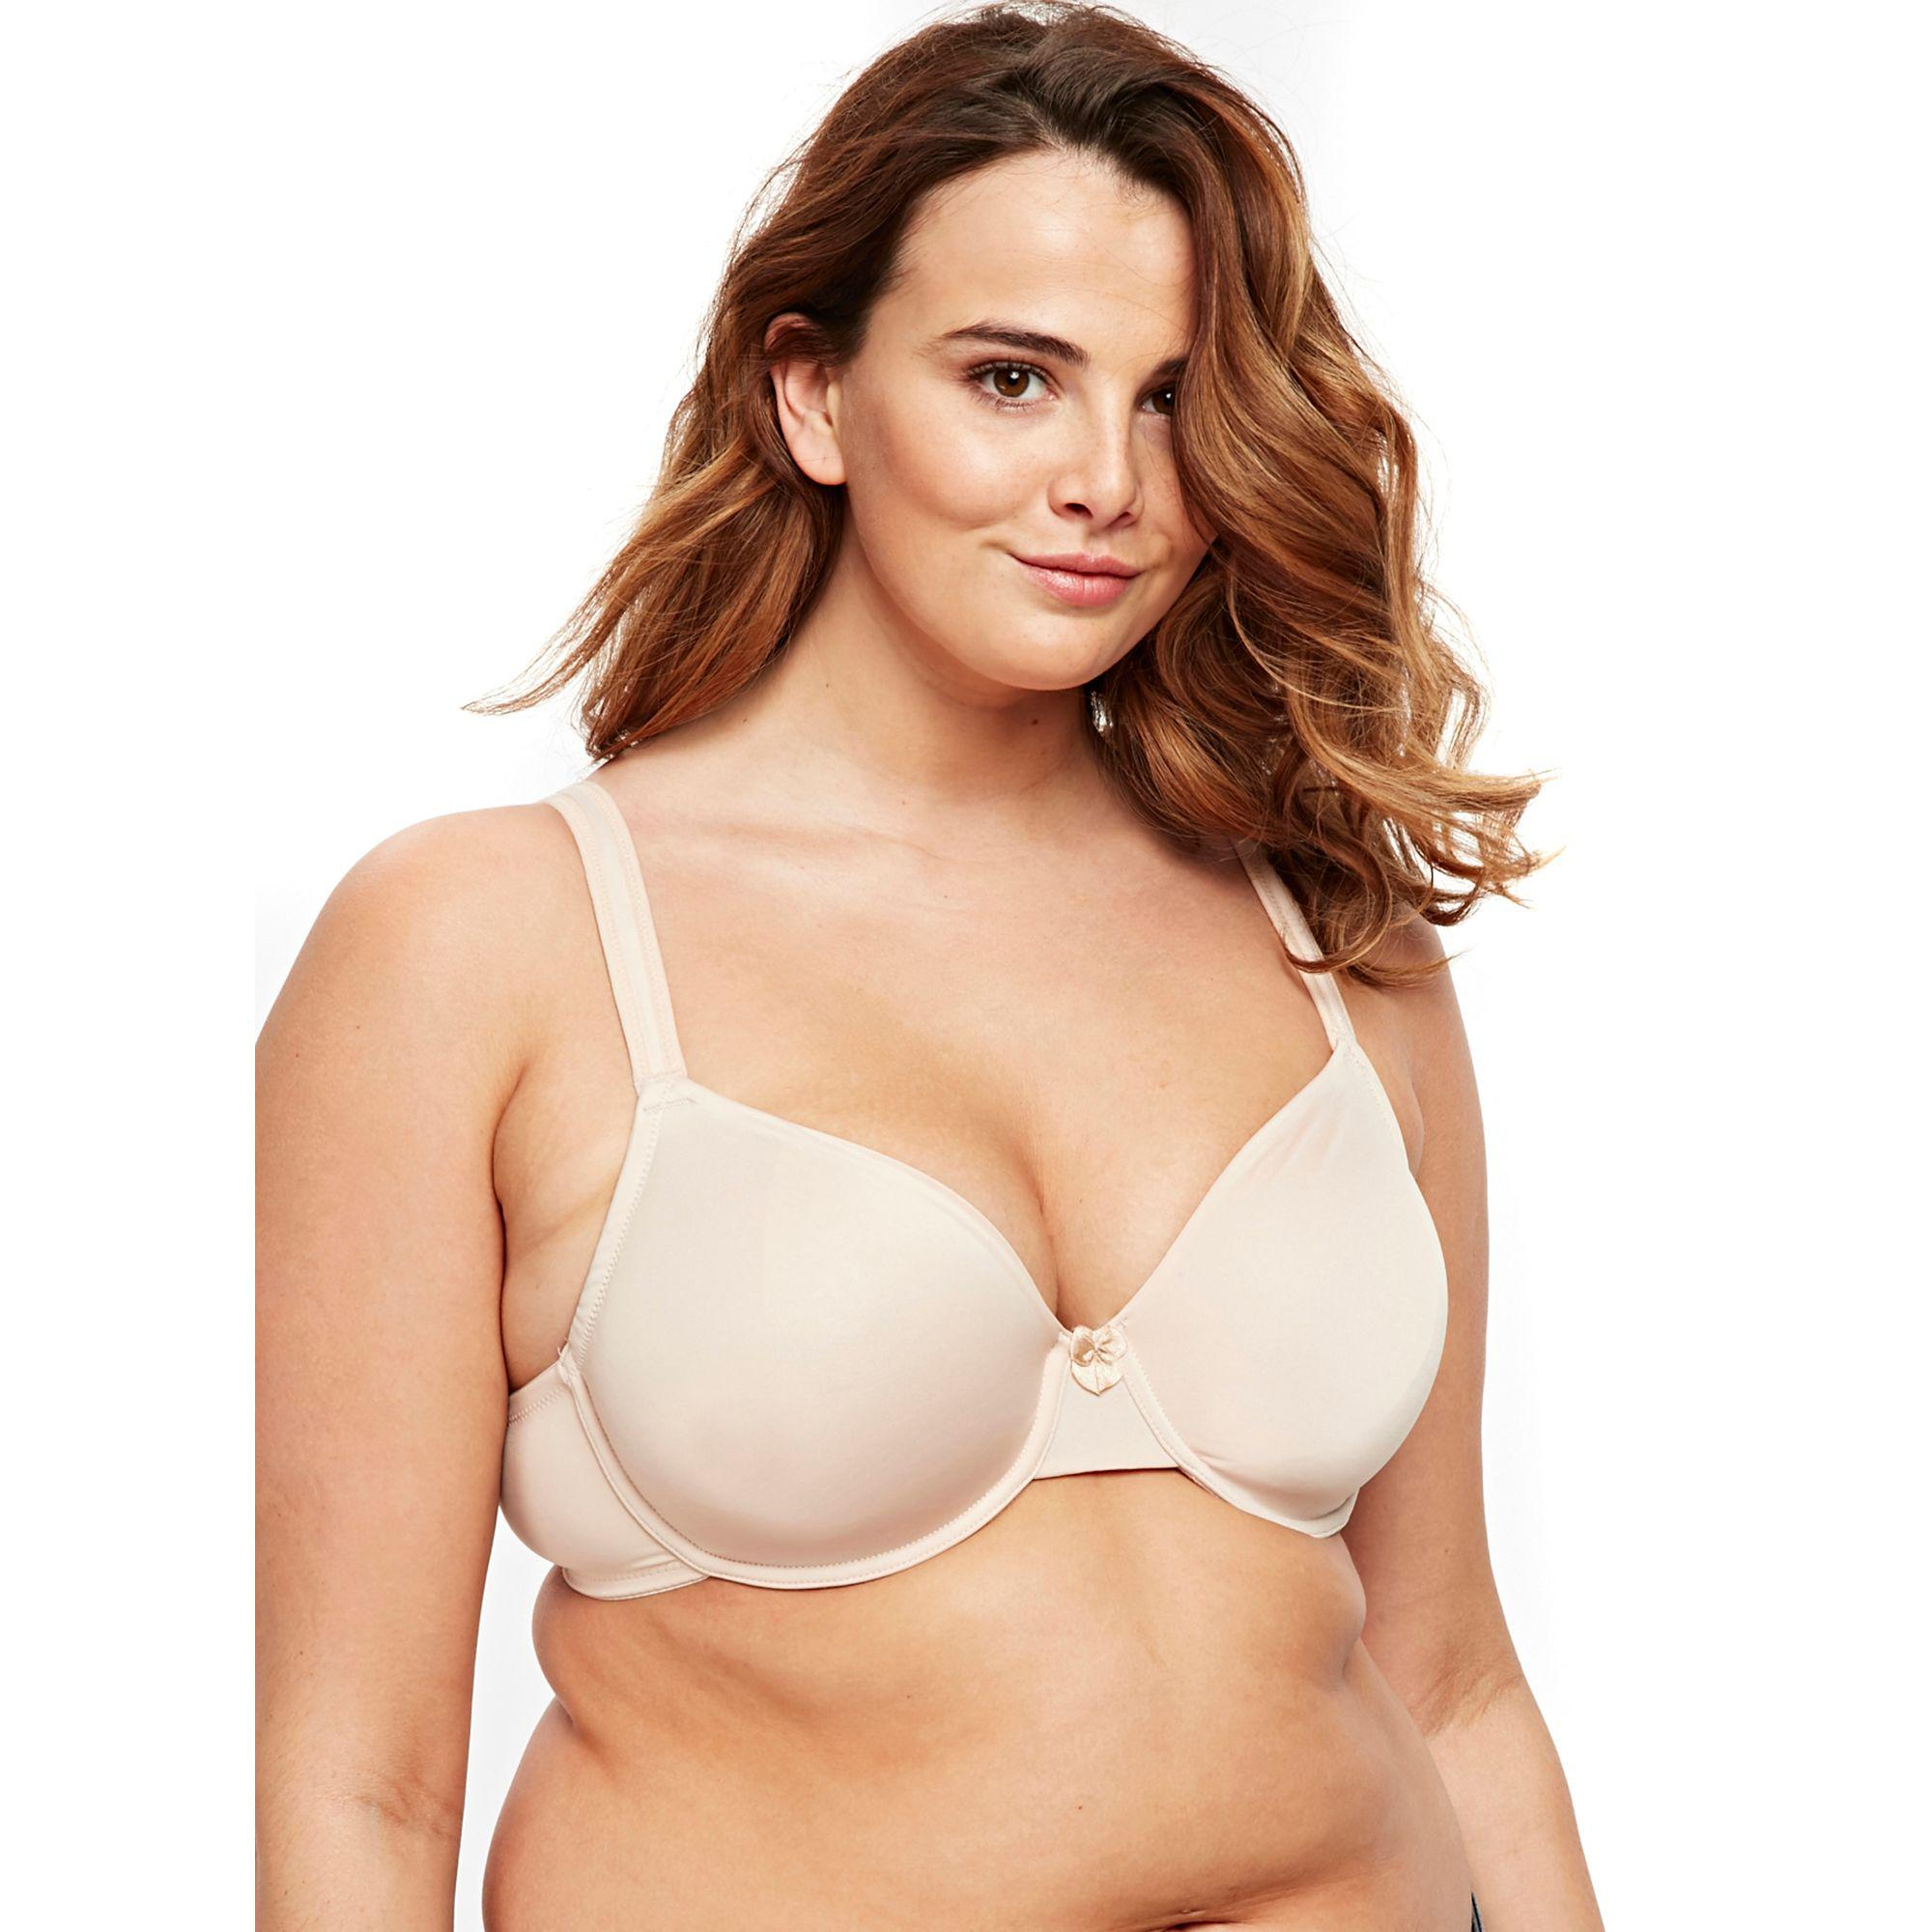 b6b91bdb752e5 Evans 2 Pack Rosie Nude And White T-shirt Bra in Natural - Lyst